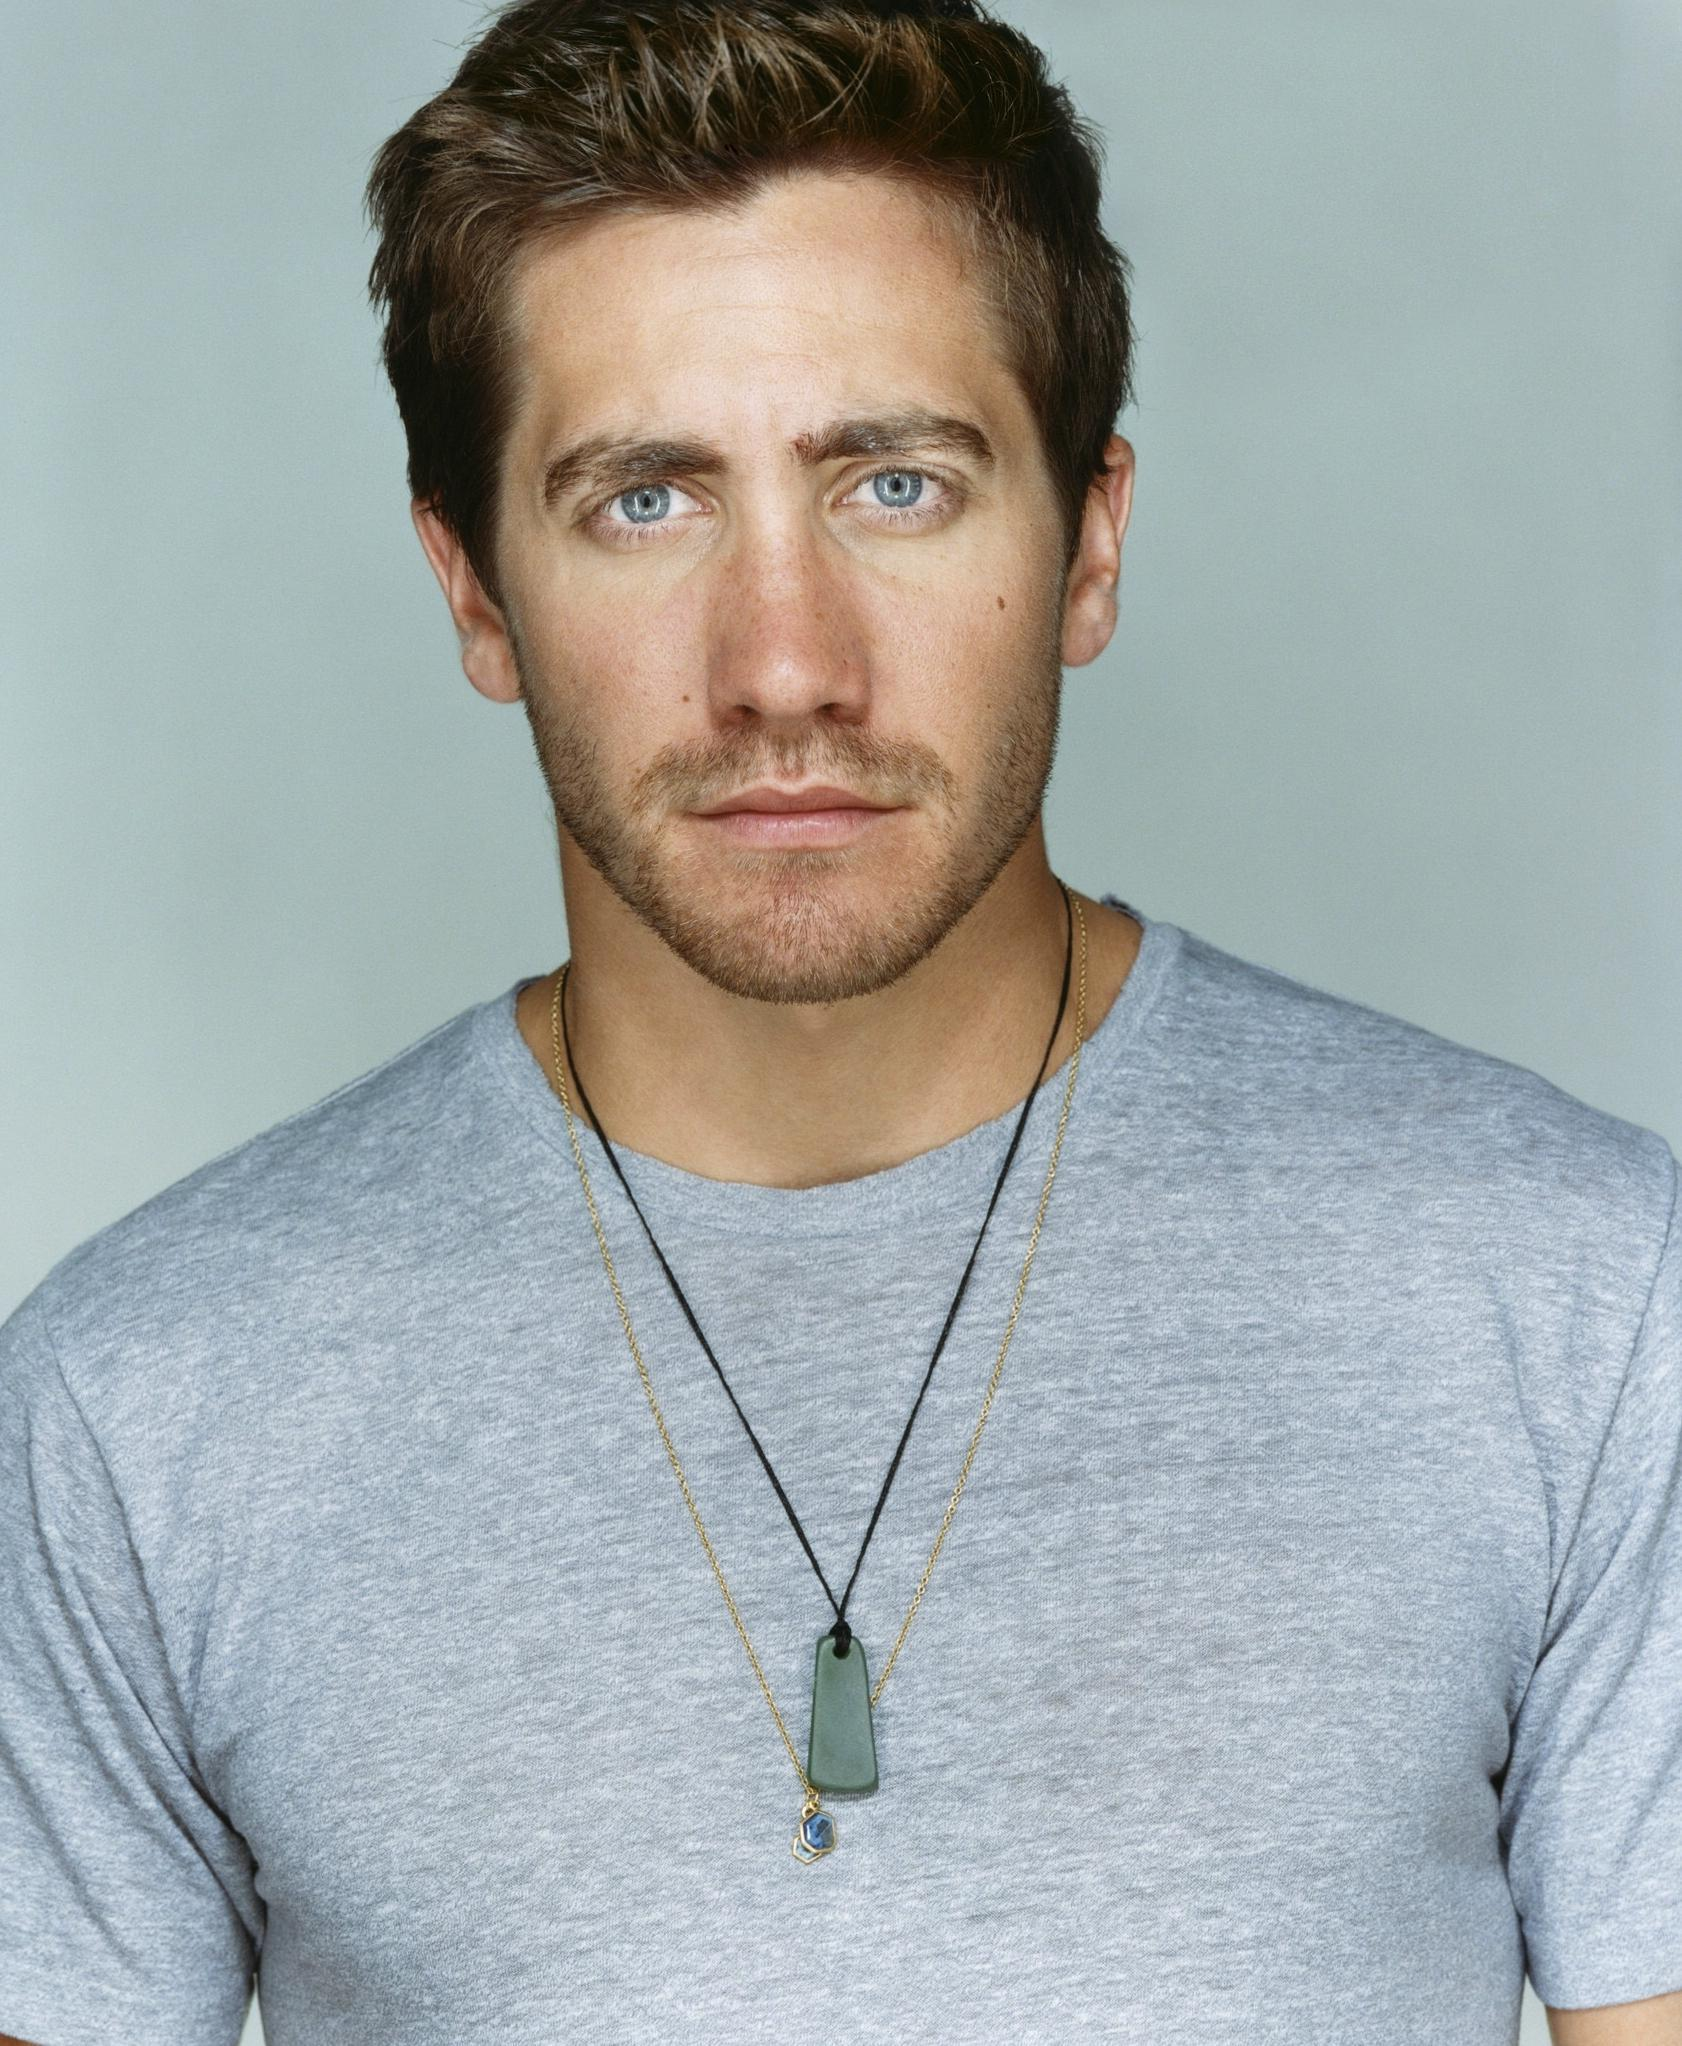 Jake gyllenhaal Celebrity HD Wallpaper